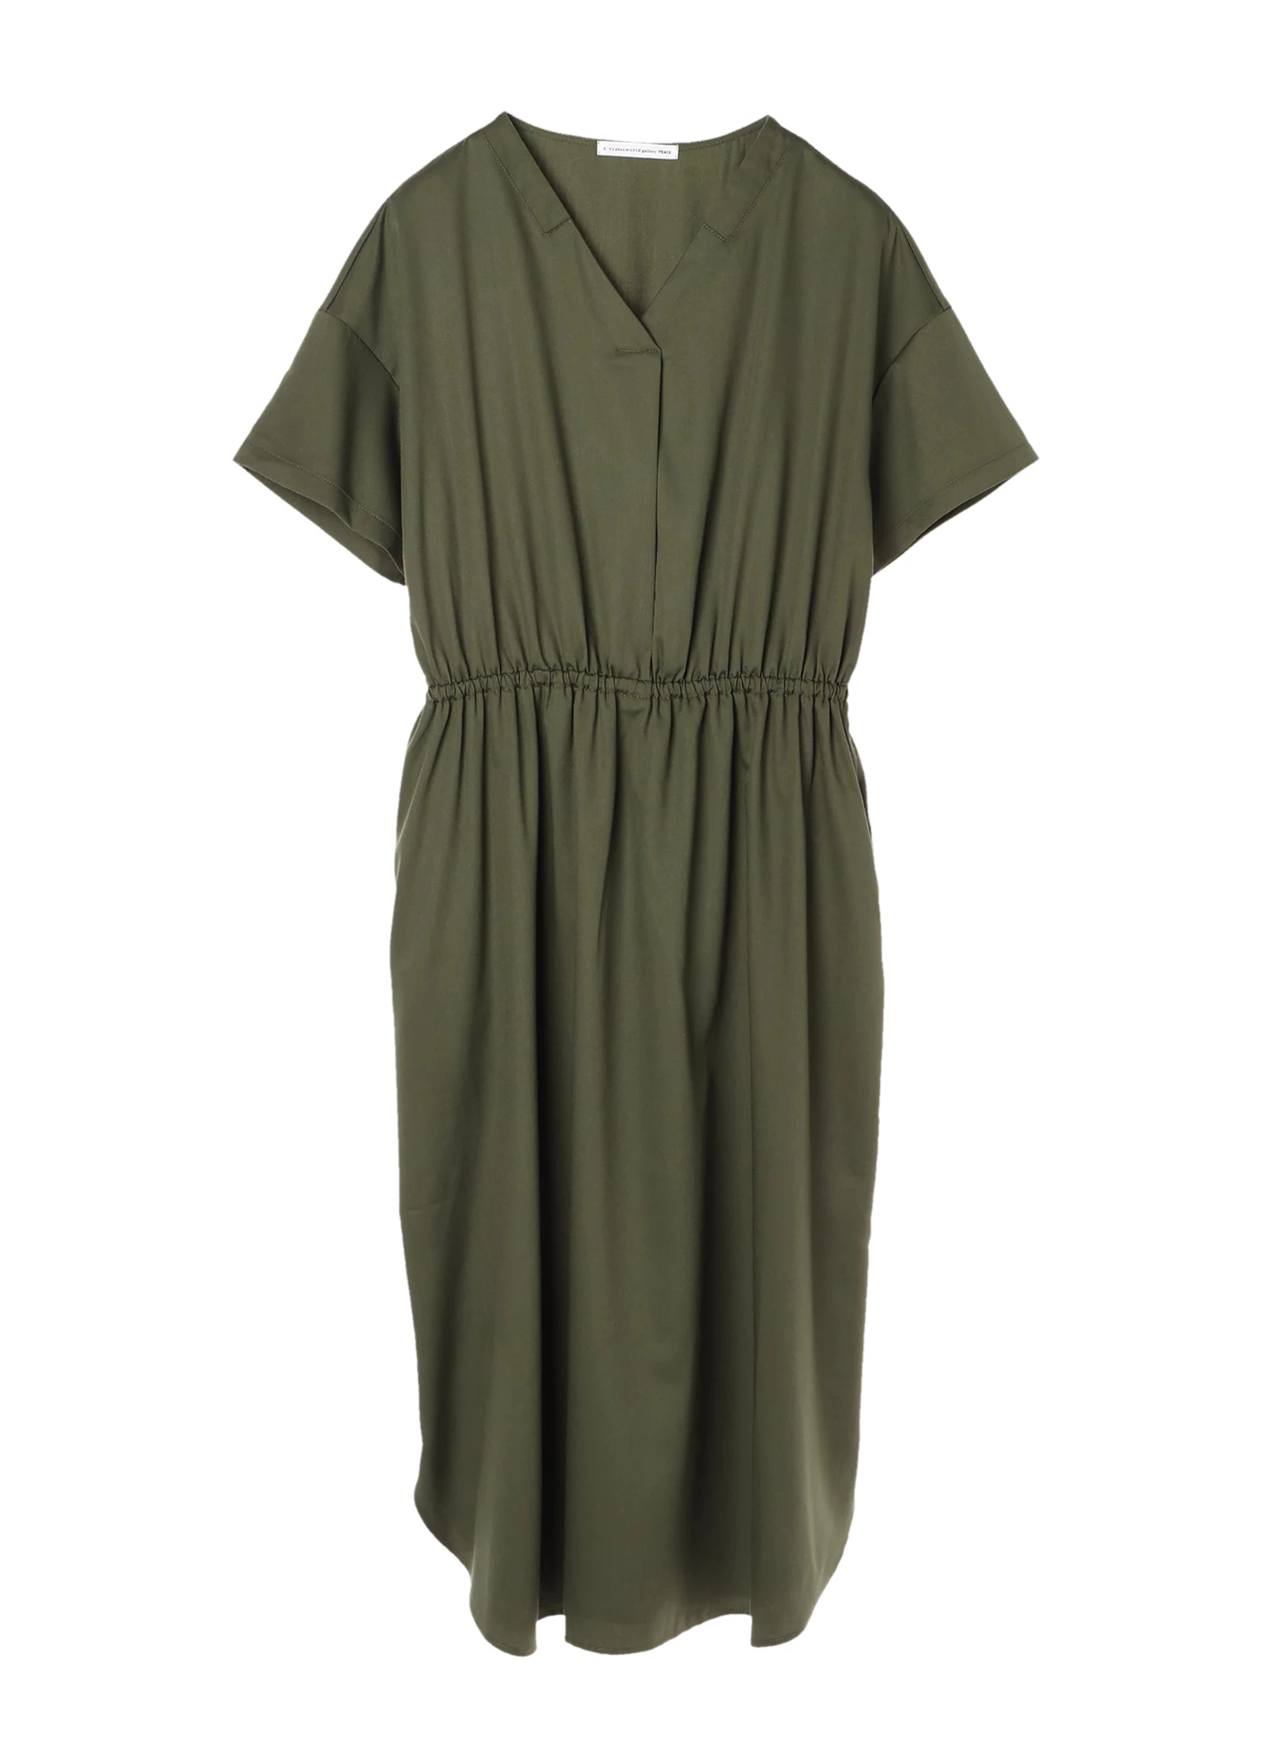 E-hyphen World Gallery Momo Dress - Khaki